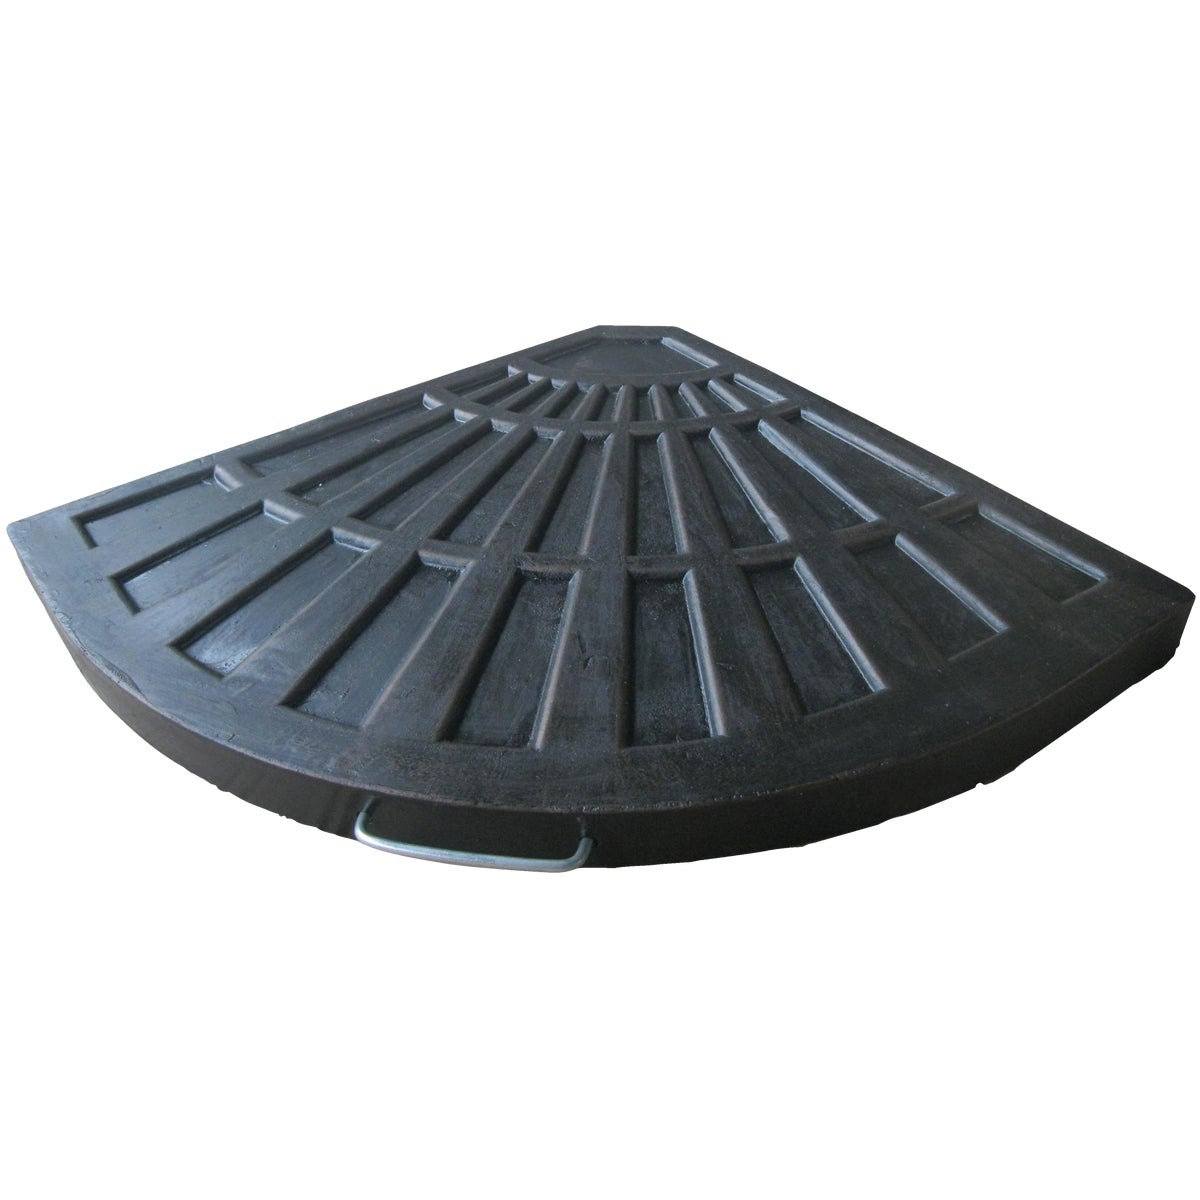 BRNZ OFFST UMBRELLA BASE - SL-USR-10 by Do it Best